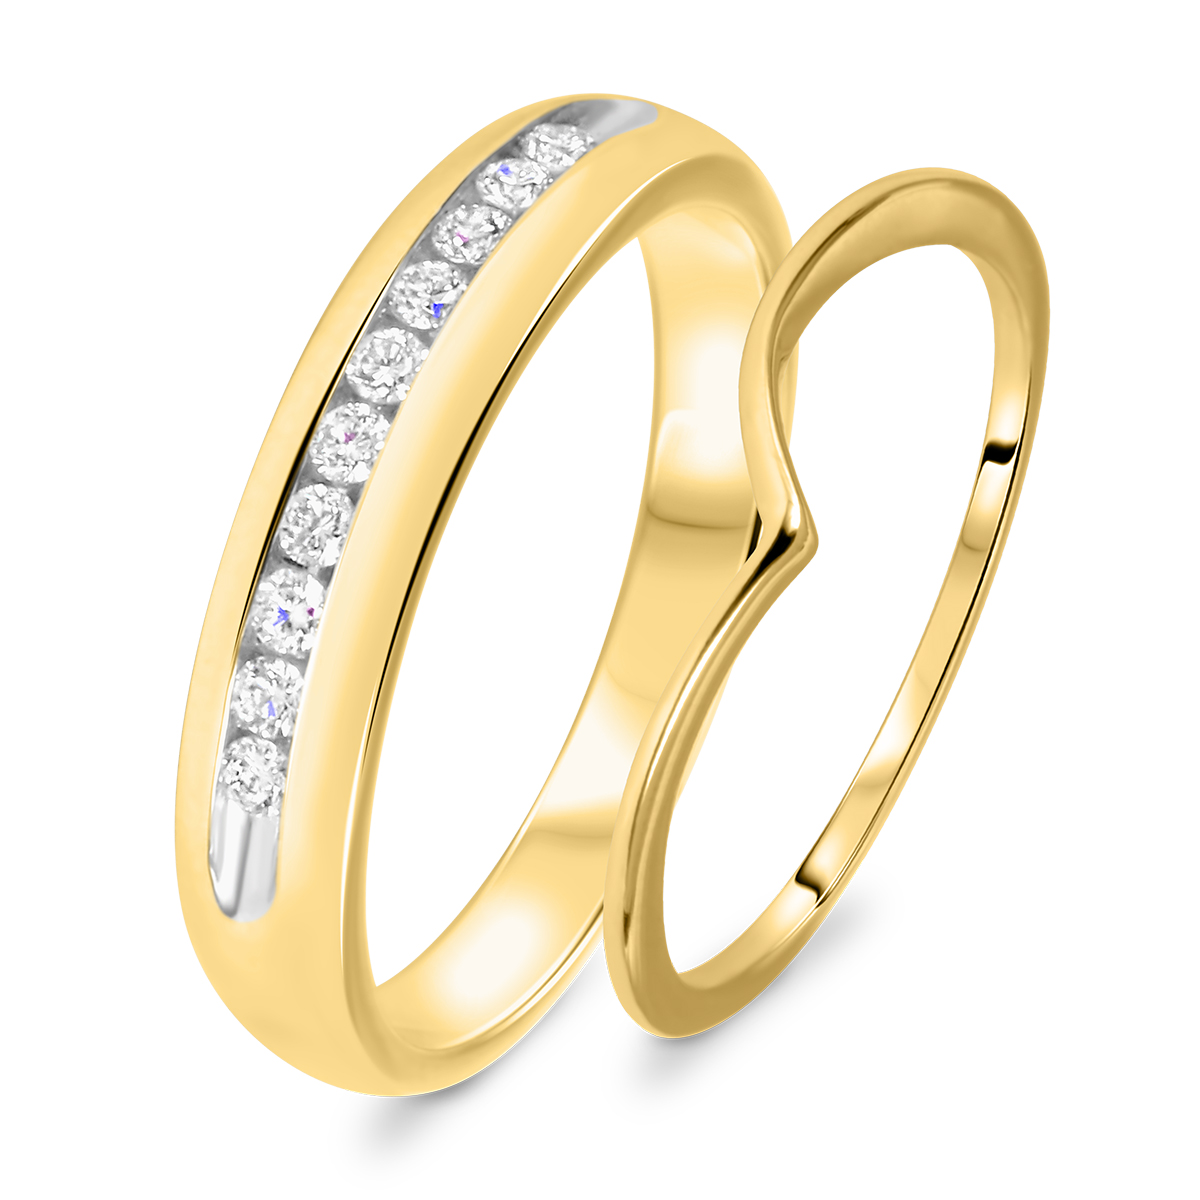 1/4 Carat T.W. Round Cut Diamond His And Hers Wedding Band Set 14K Yellow Gold-